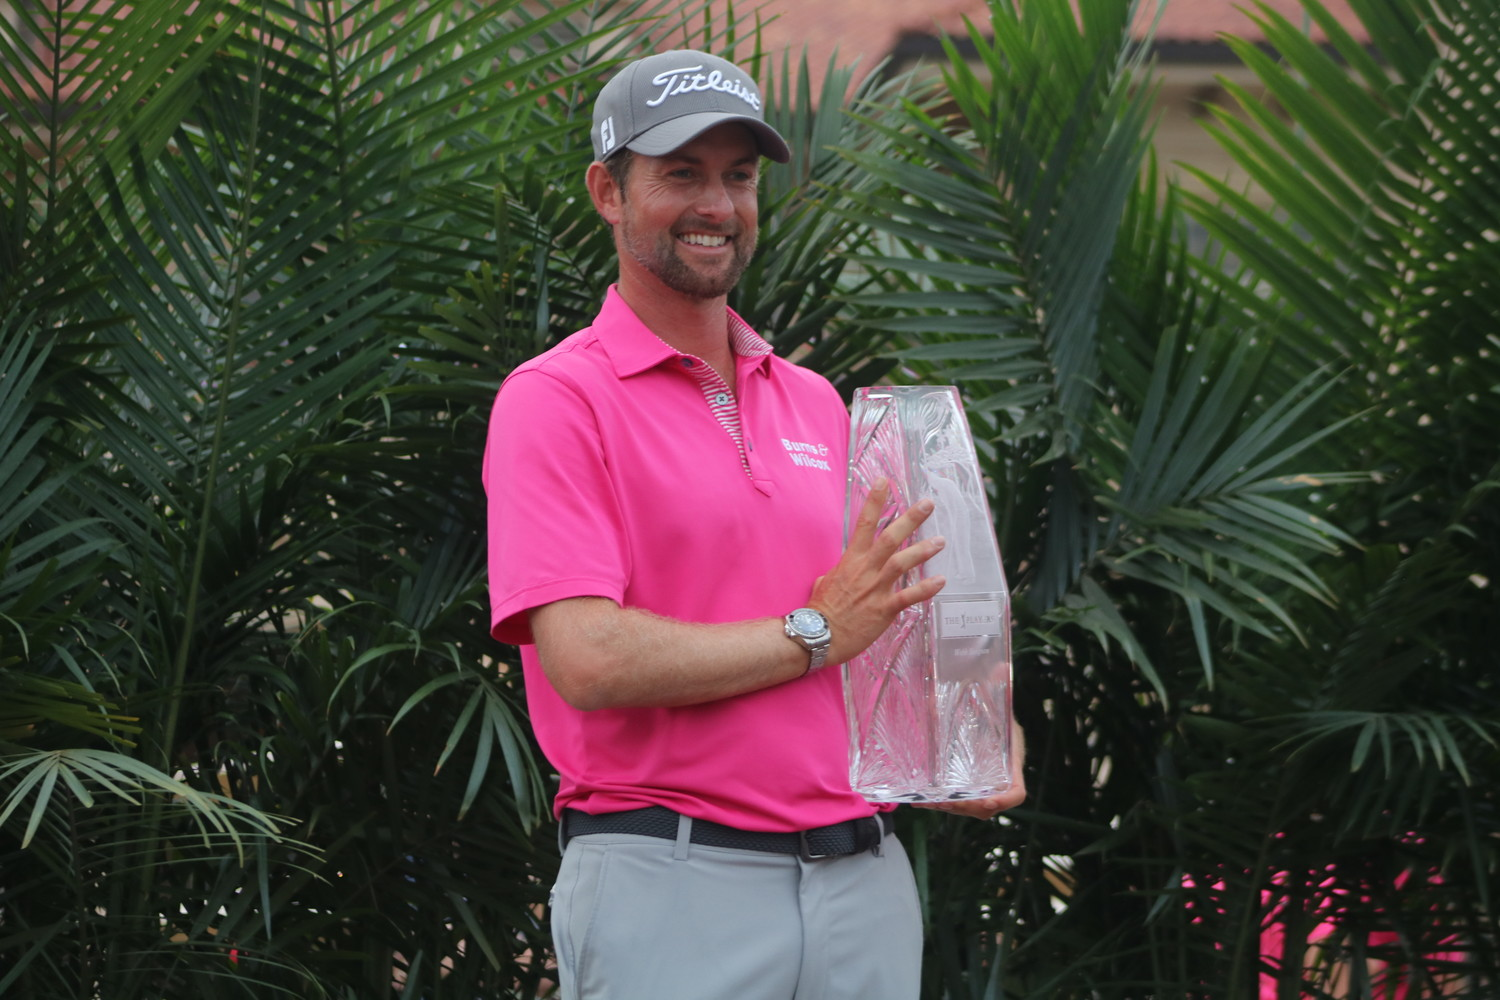 Webb Simpson is the winner of THE PLAYERS Championship 2018 after finishing 18-under 270.